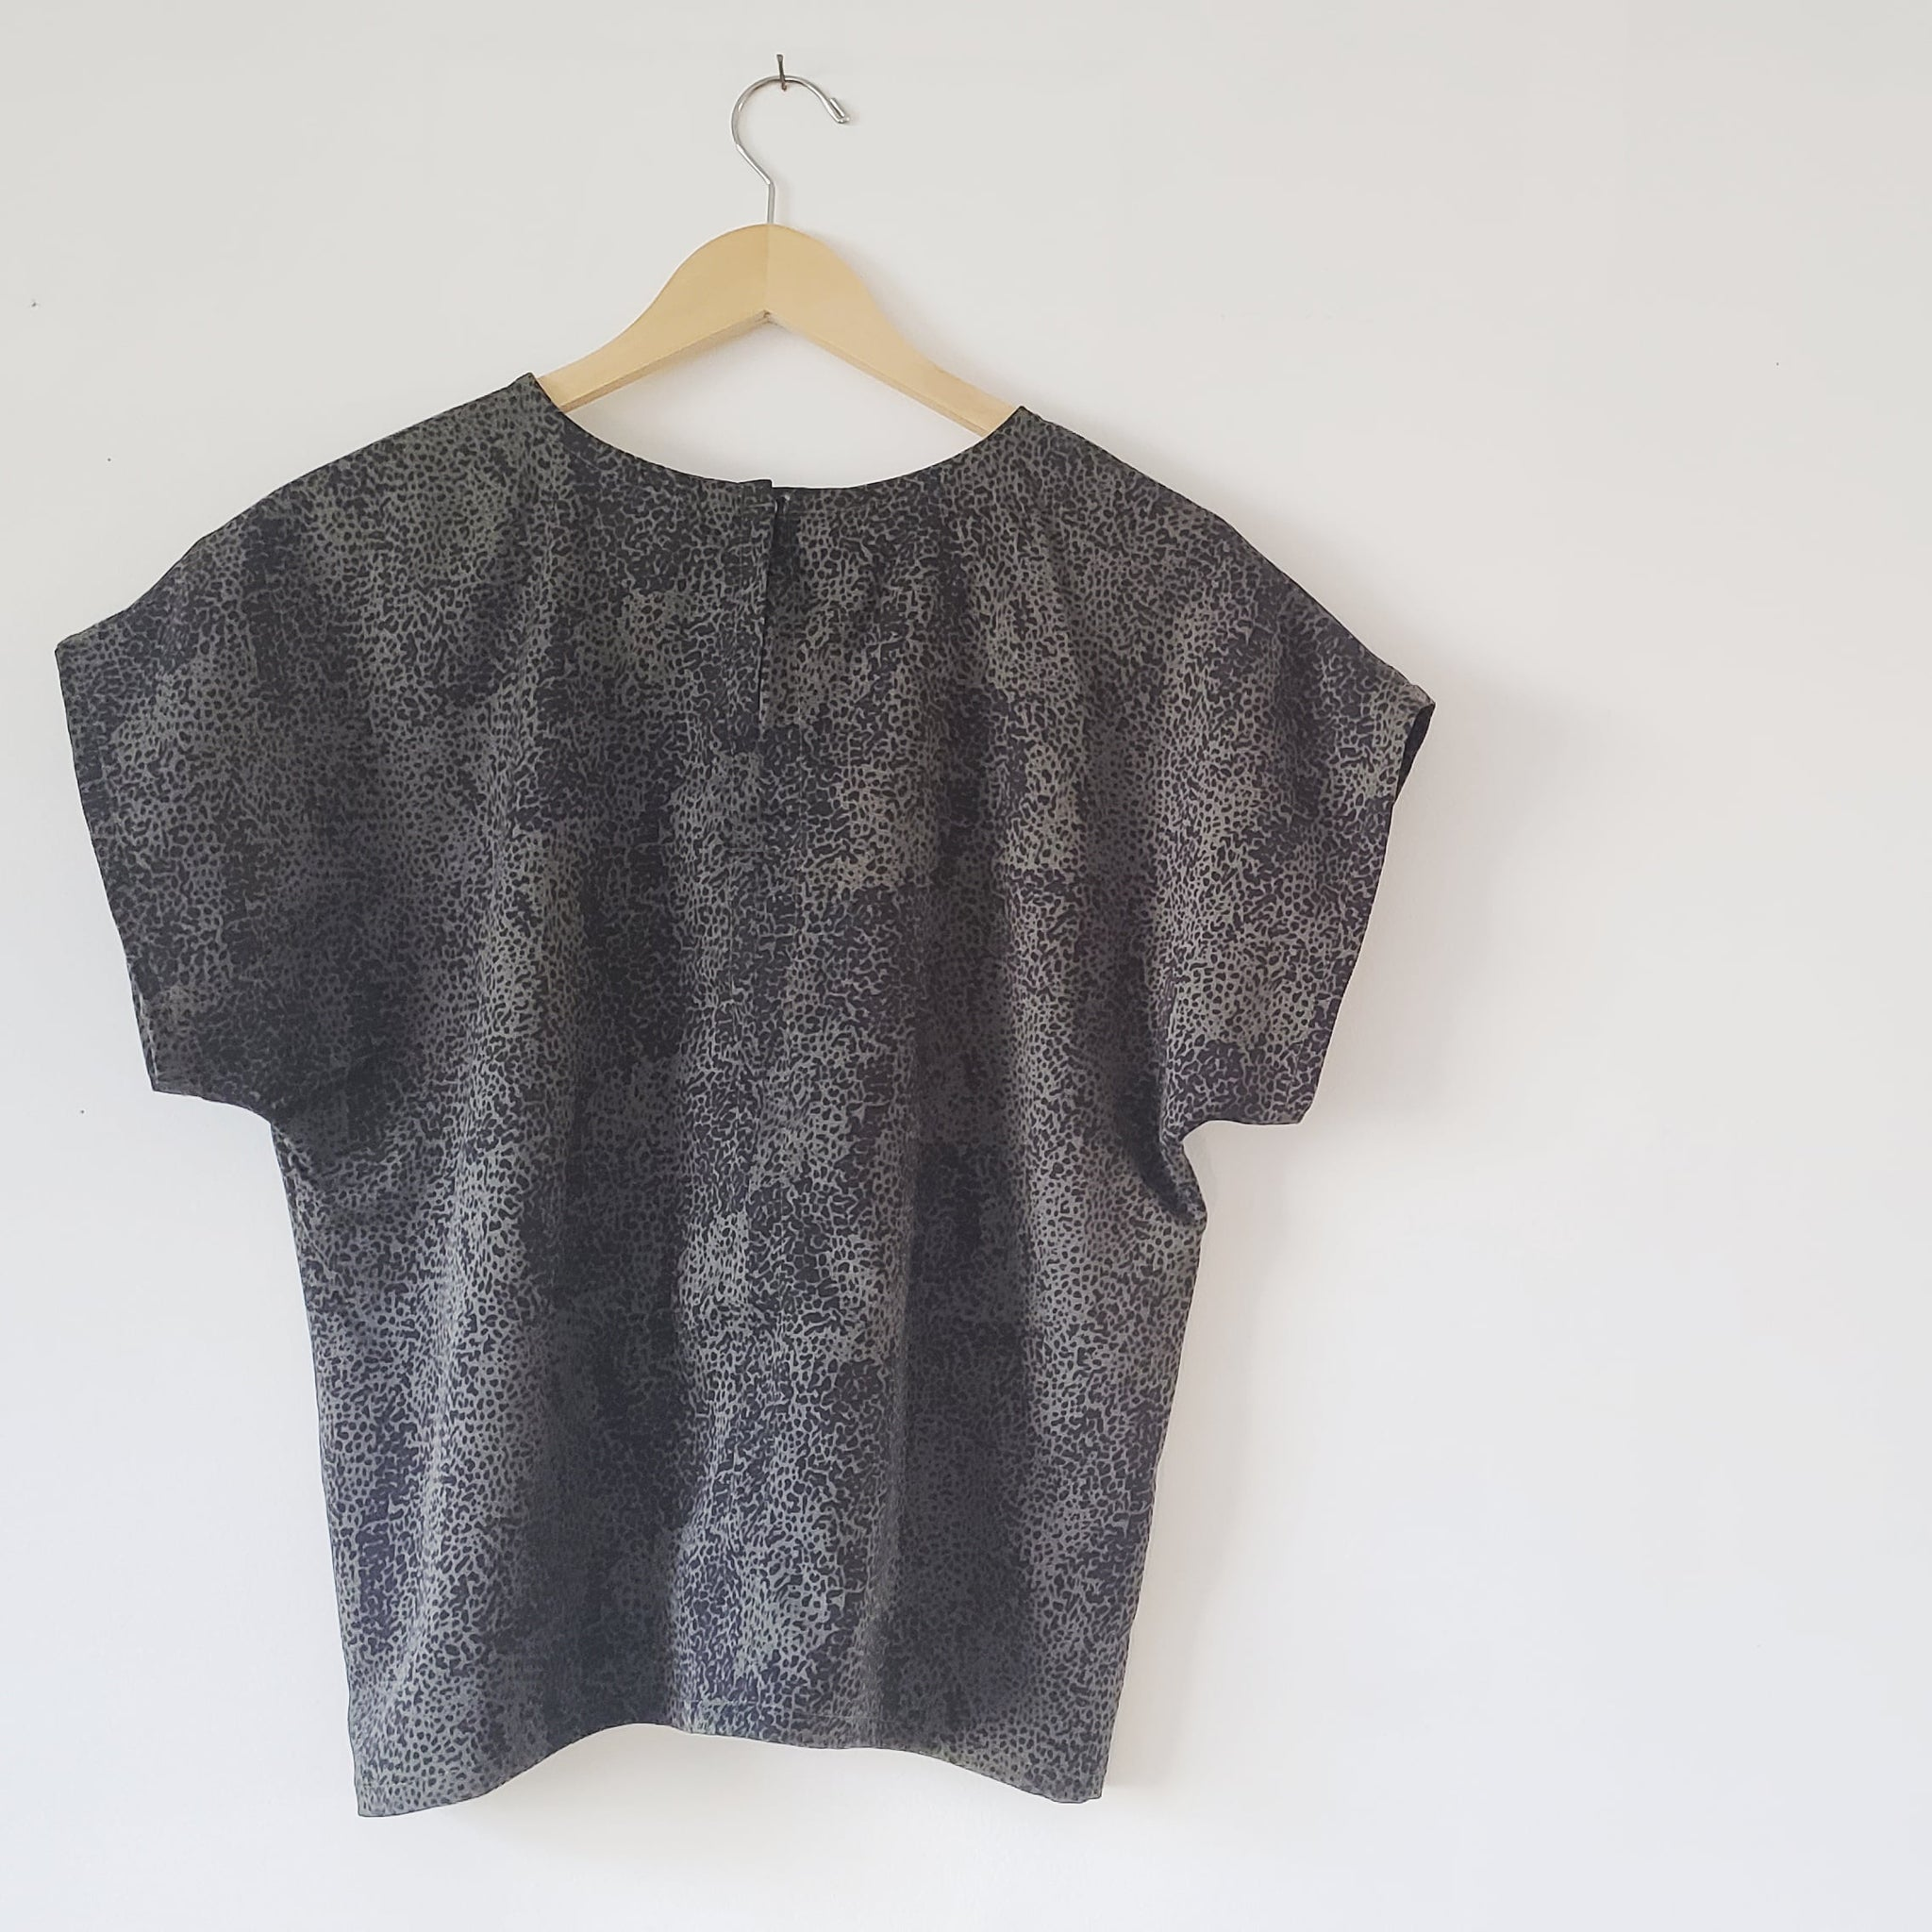 olive green with small black cheetah spots tee shirt hanging on a wall